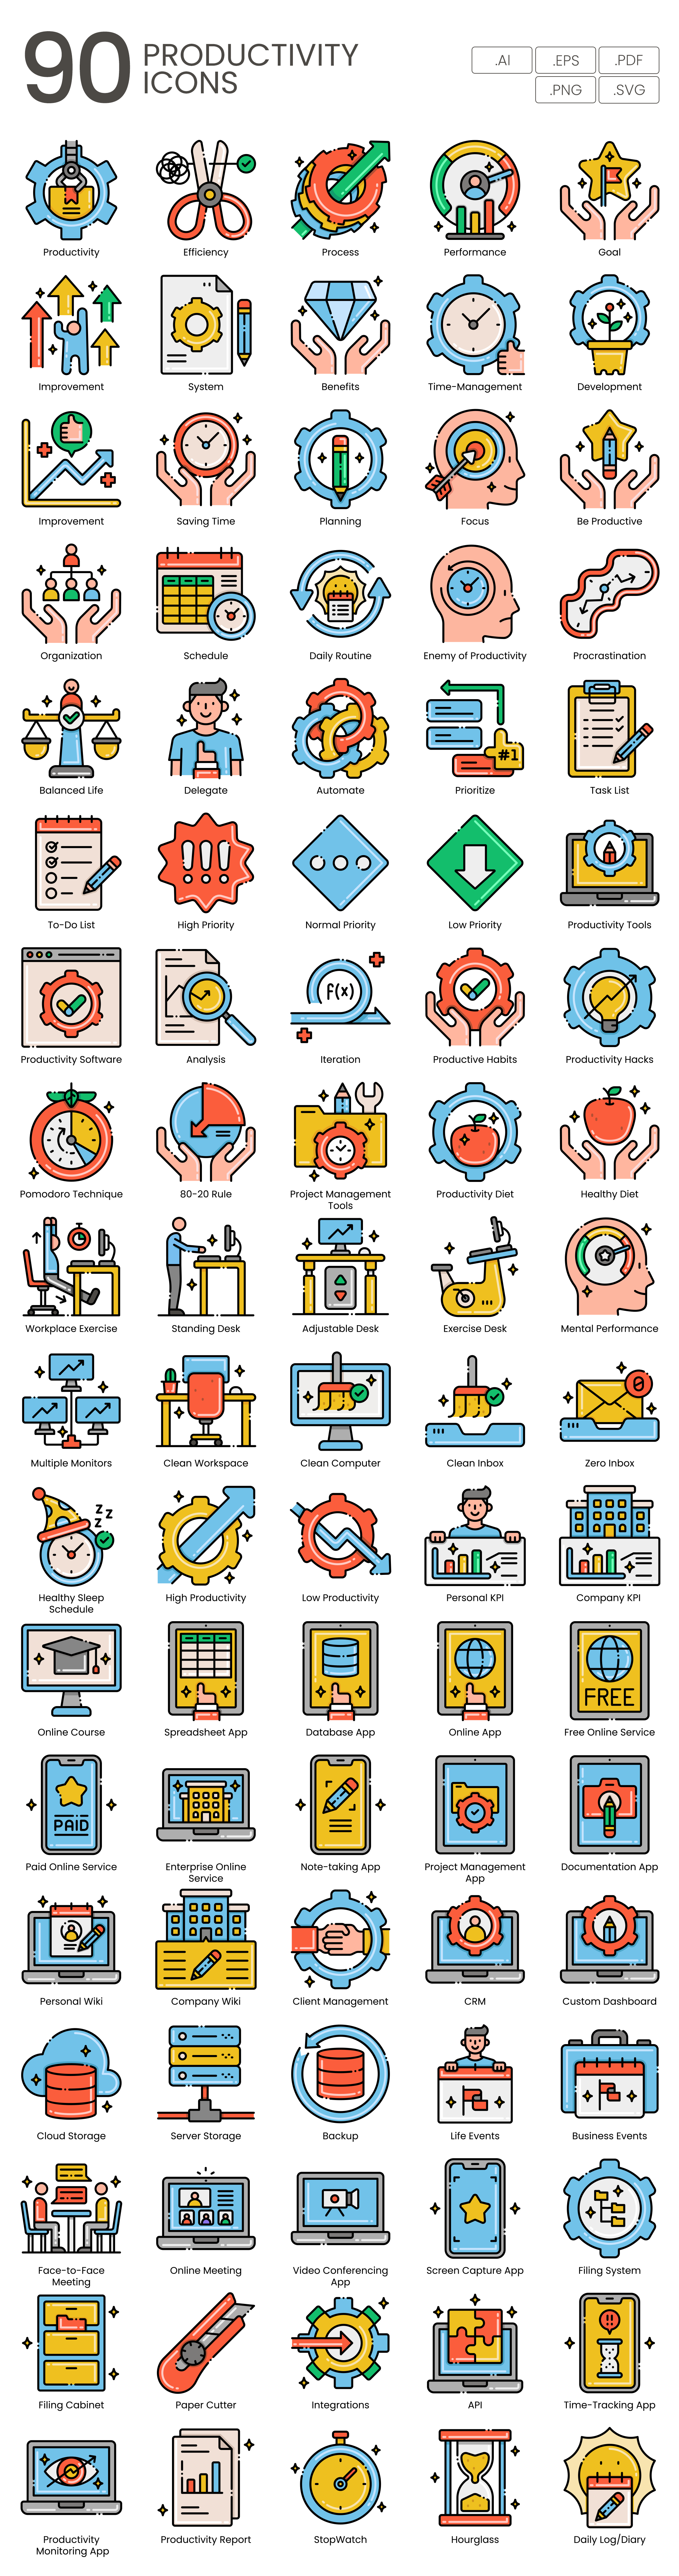 Efficiency and Productivity Vector Icons Preview Image